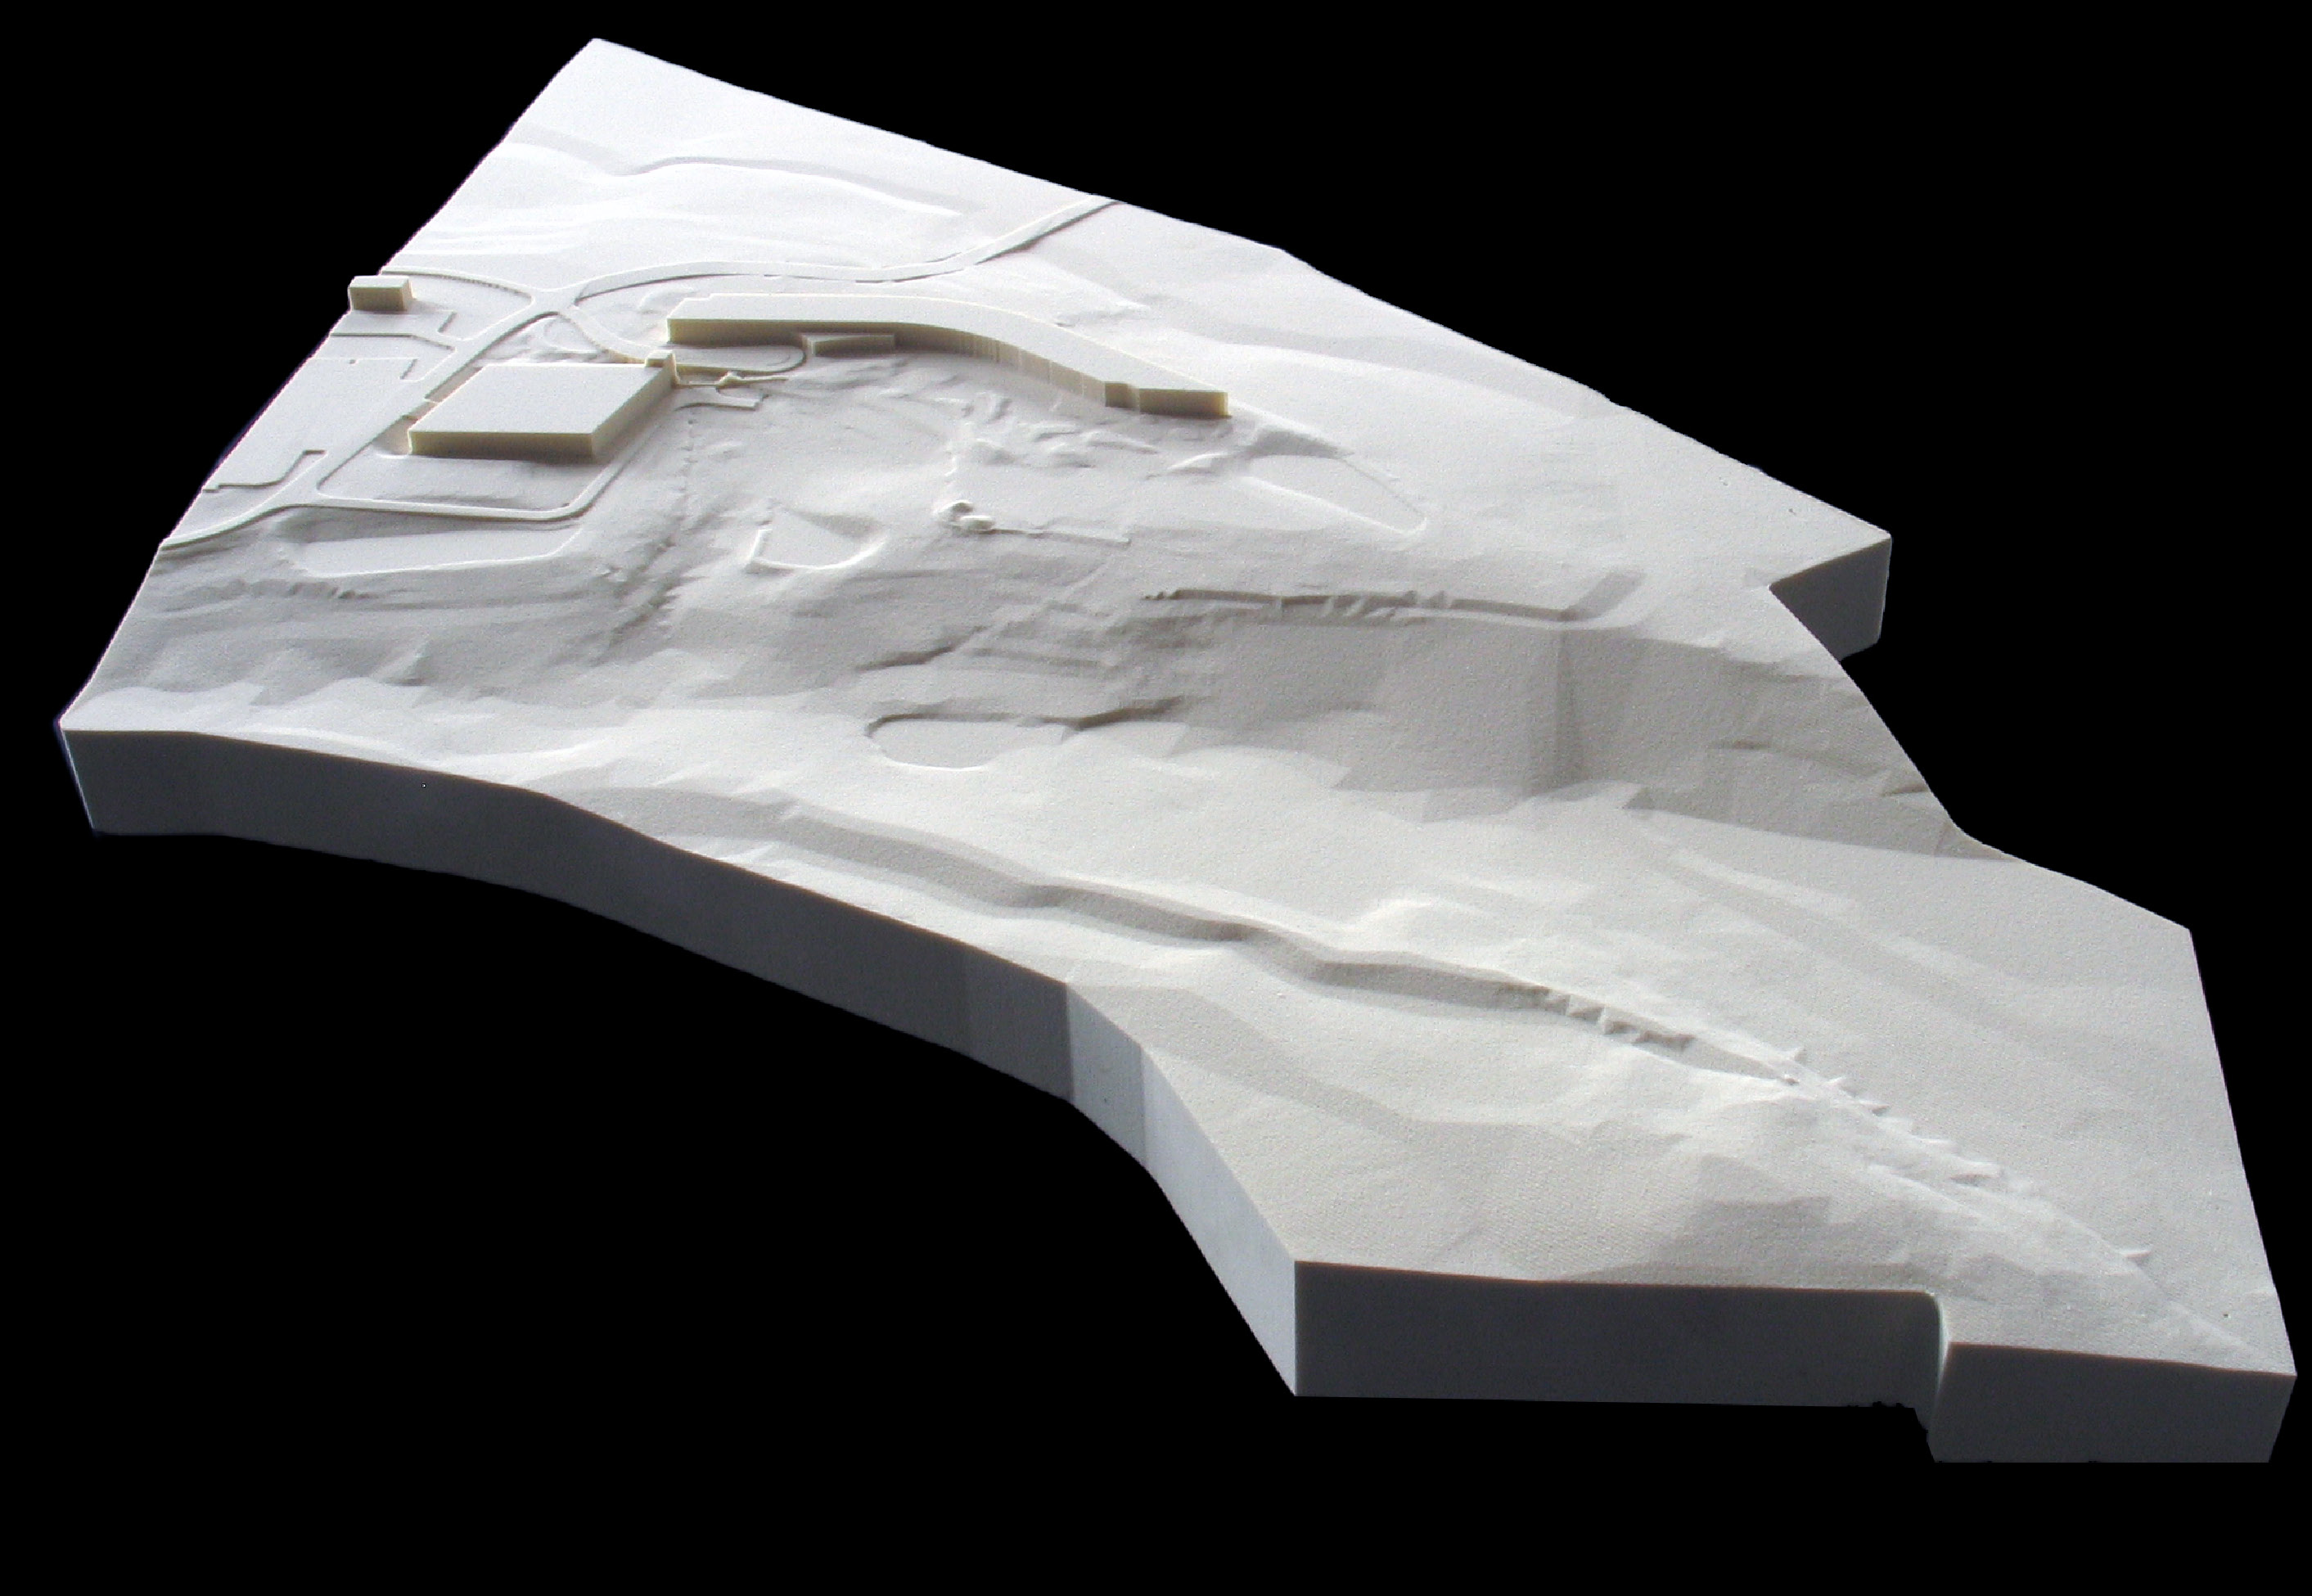 CNC milled, painted, high density foam model for FxFowle Architects